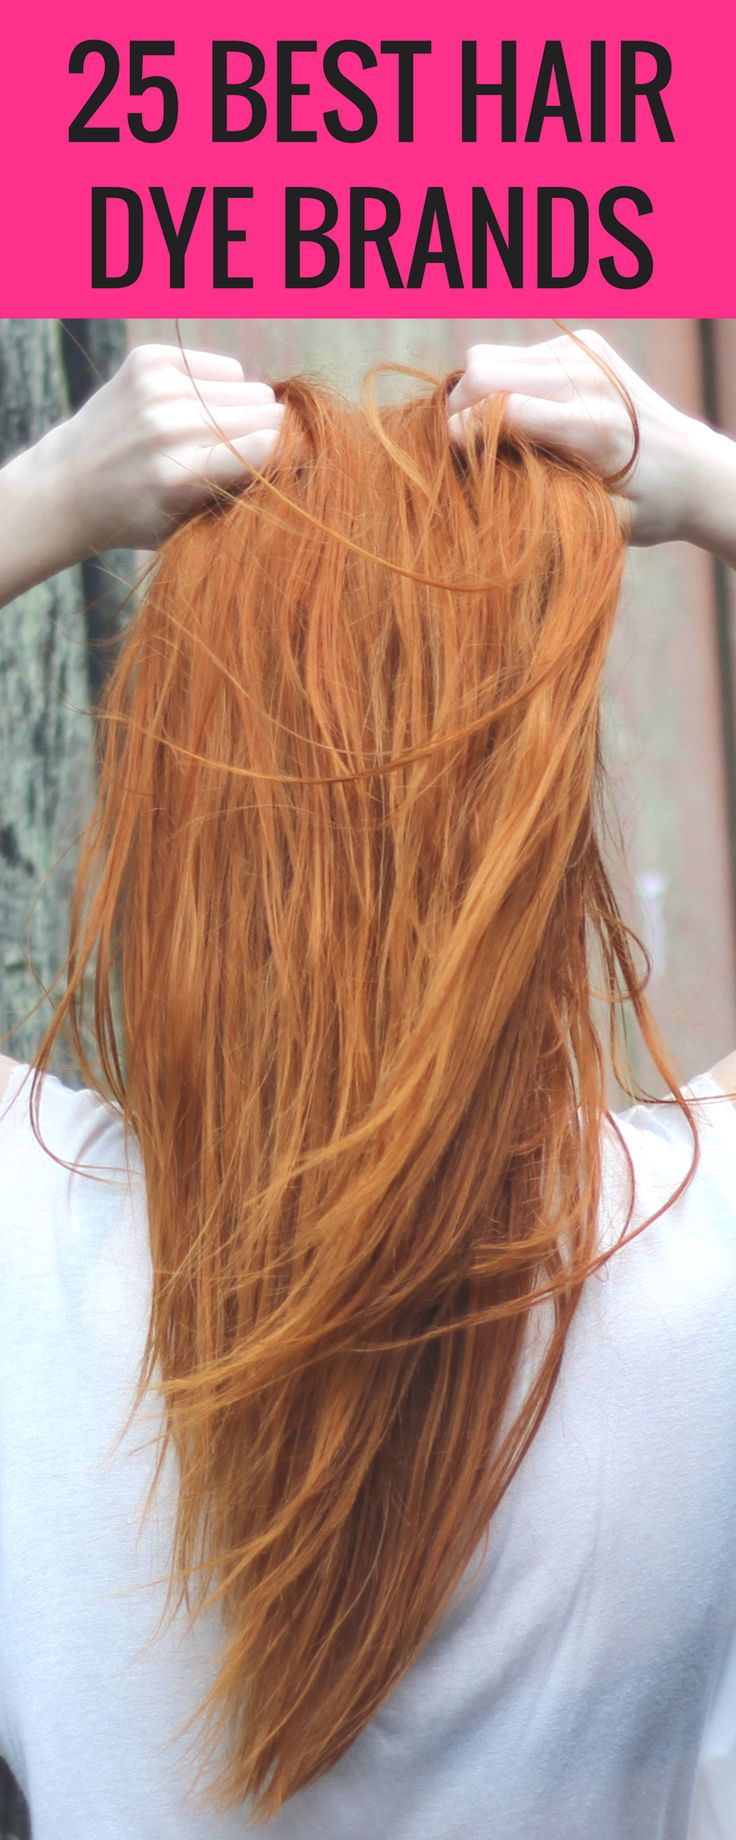 Great list for dying your hair at home